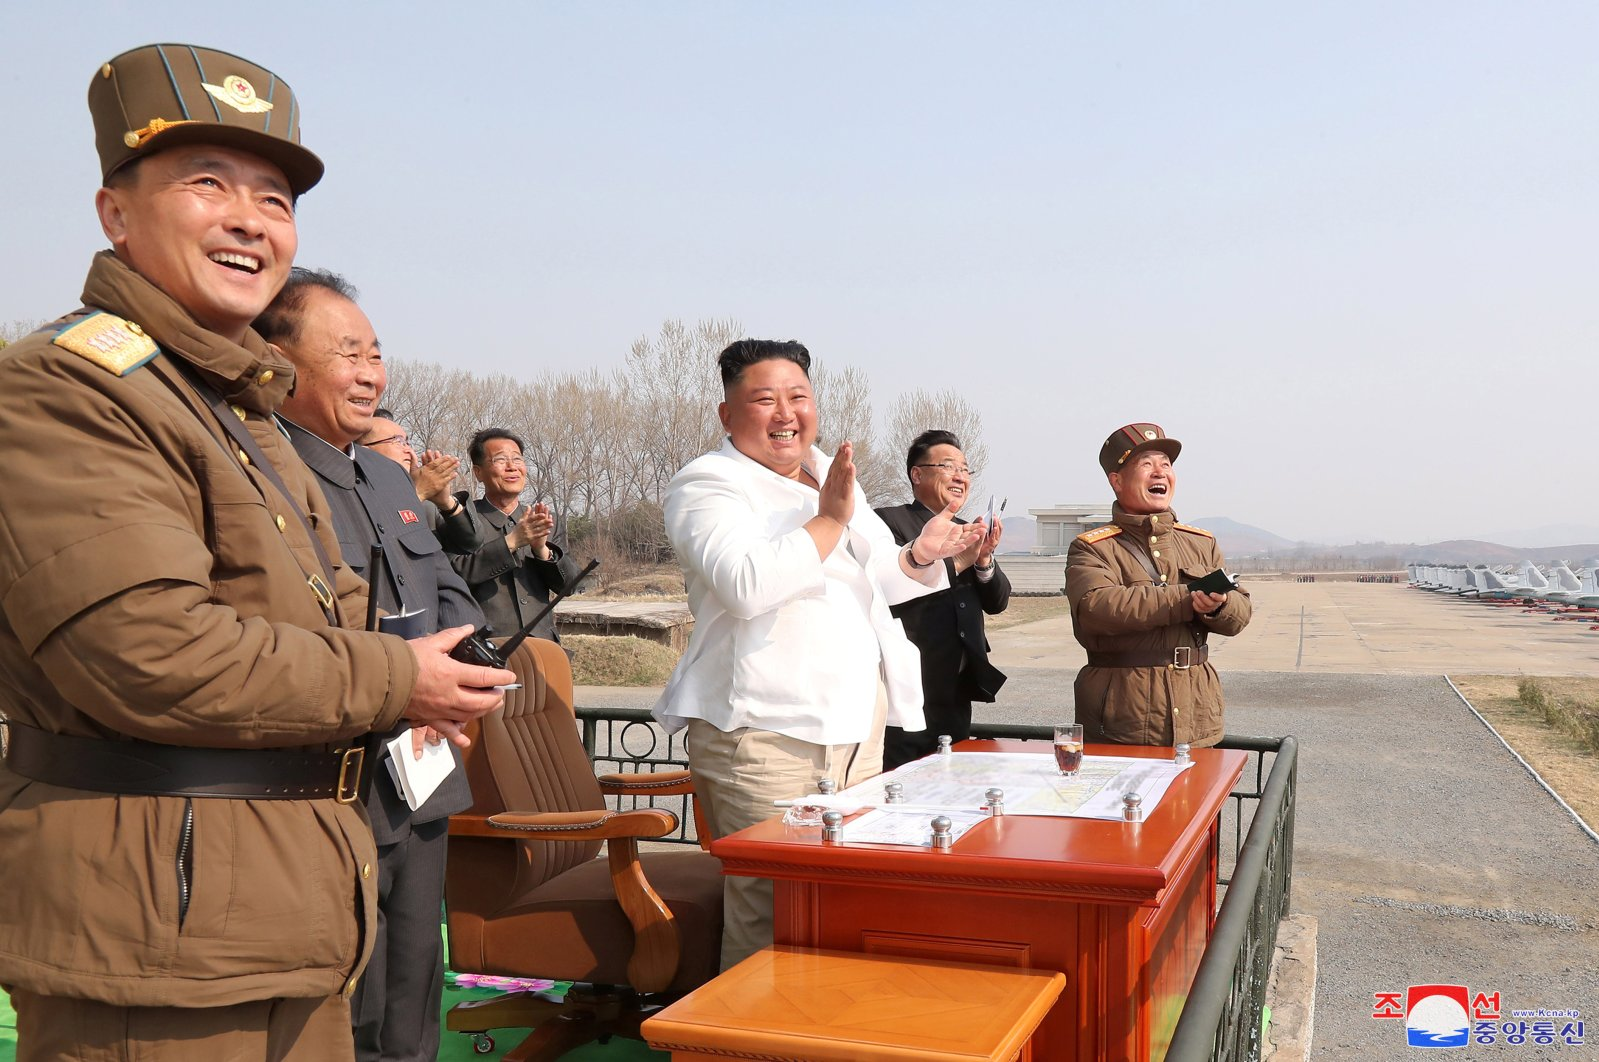 North Korean leader Kim Jong Un applauds while visiting a pursuit assault plane group under the Air and Anti-Aircraft Division in the western area in this undated image released by North Korea's Korean Central News Agency (KCNA) in Pyongyang on April 12, 2020. (KCNA/via Reuters)